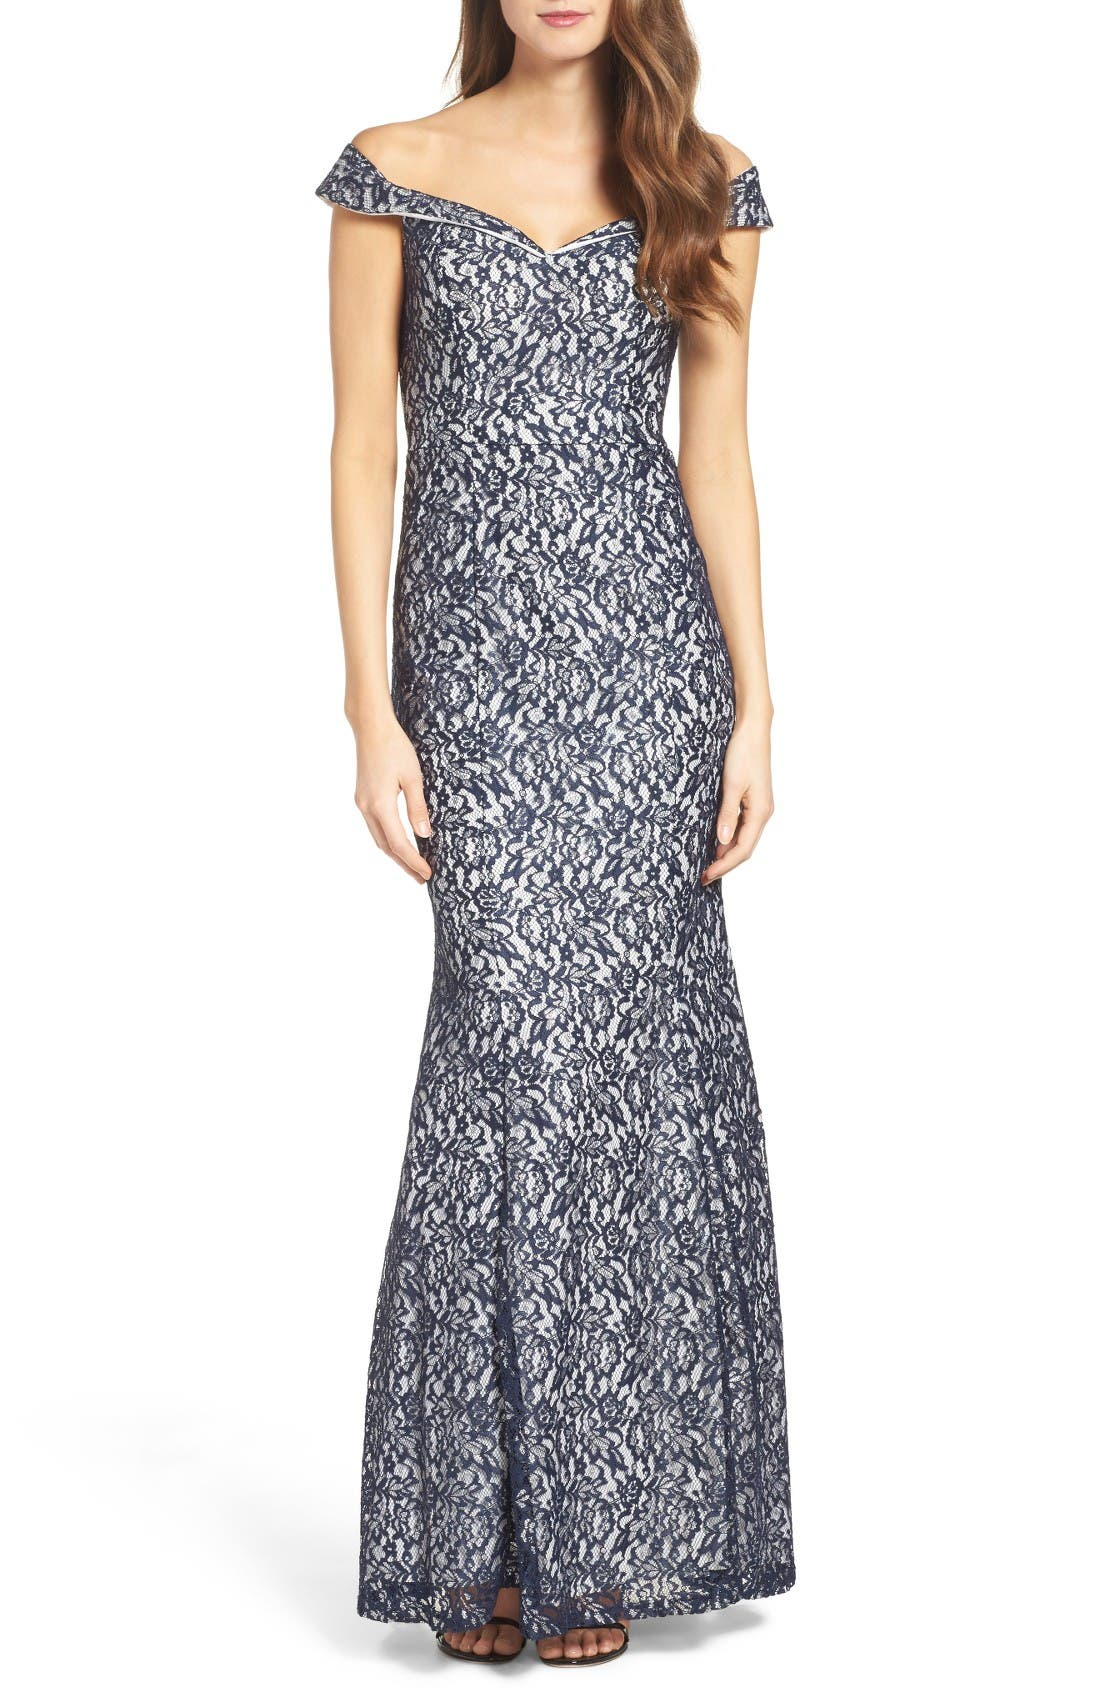 Alternate Image 1 Selected - Sequin Hearts Off the Shoulder Lace Mermaid Gown